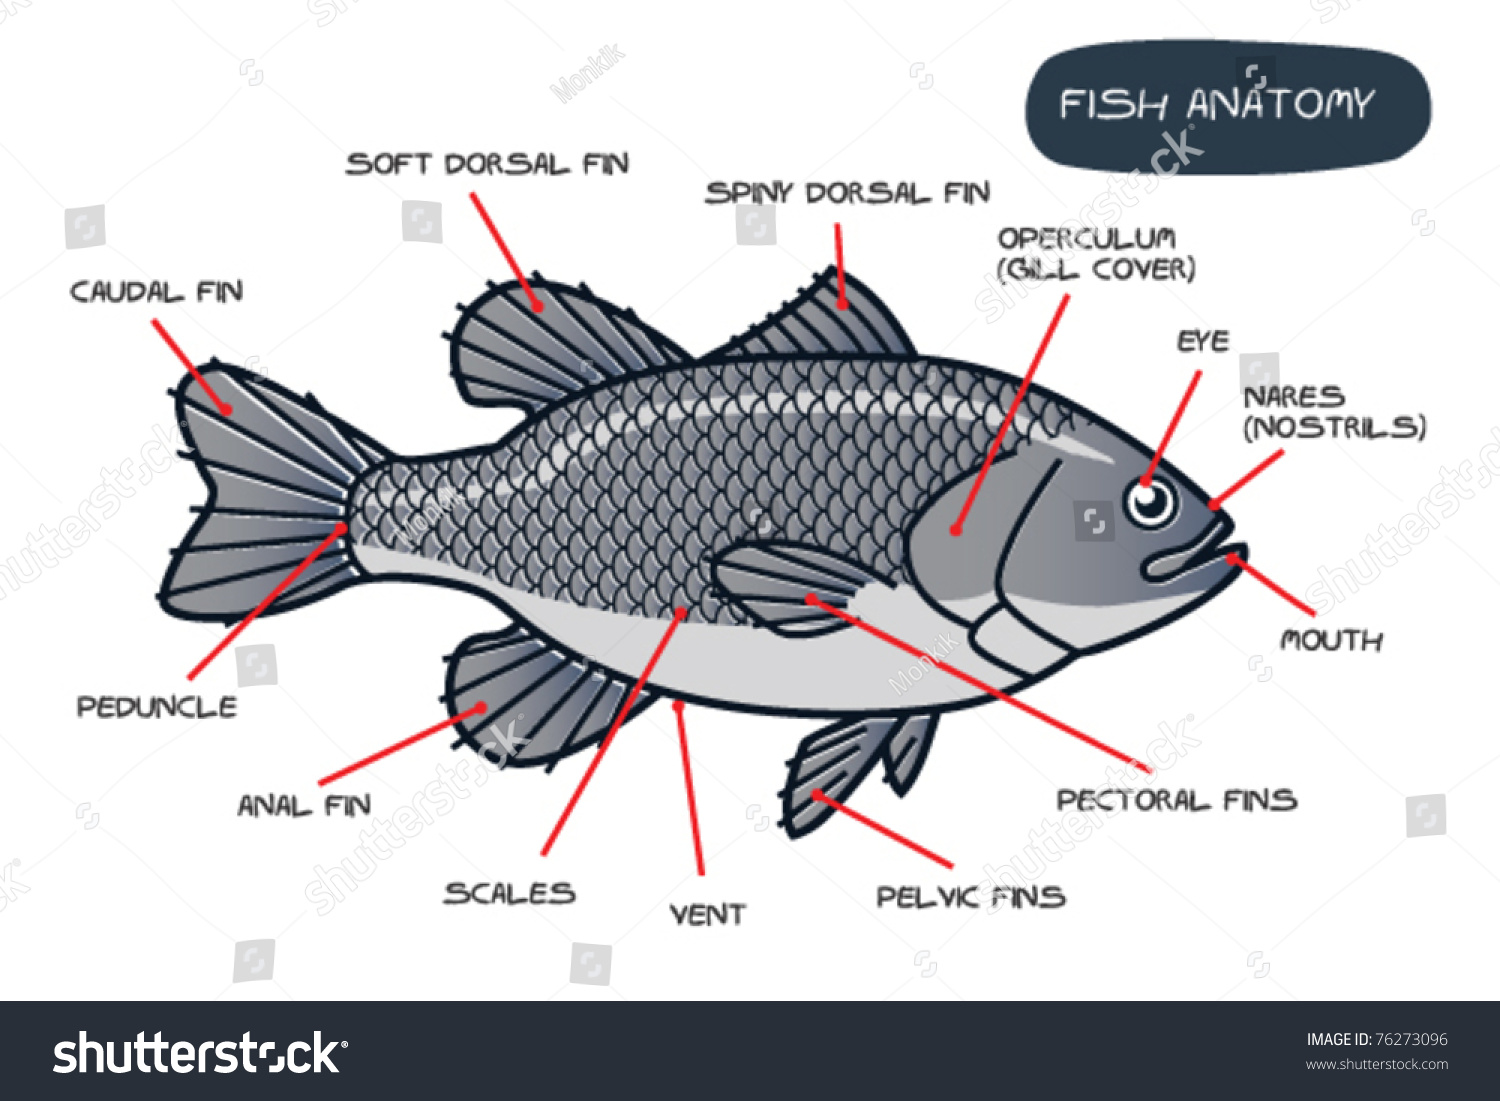 Fish Anatomy Stock Vector HD (Royalty Free) 76273096 - Shutterstock